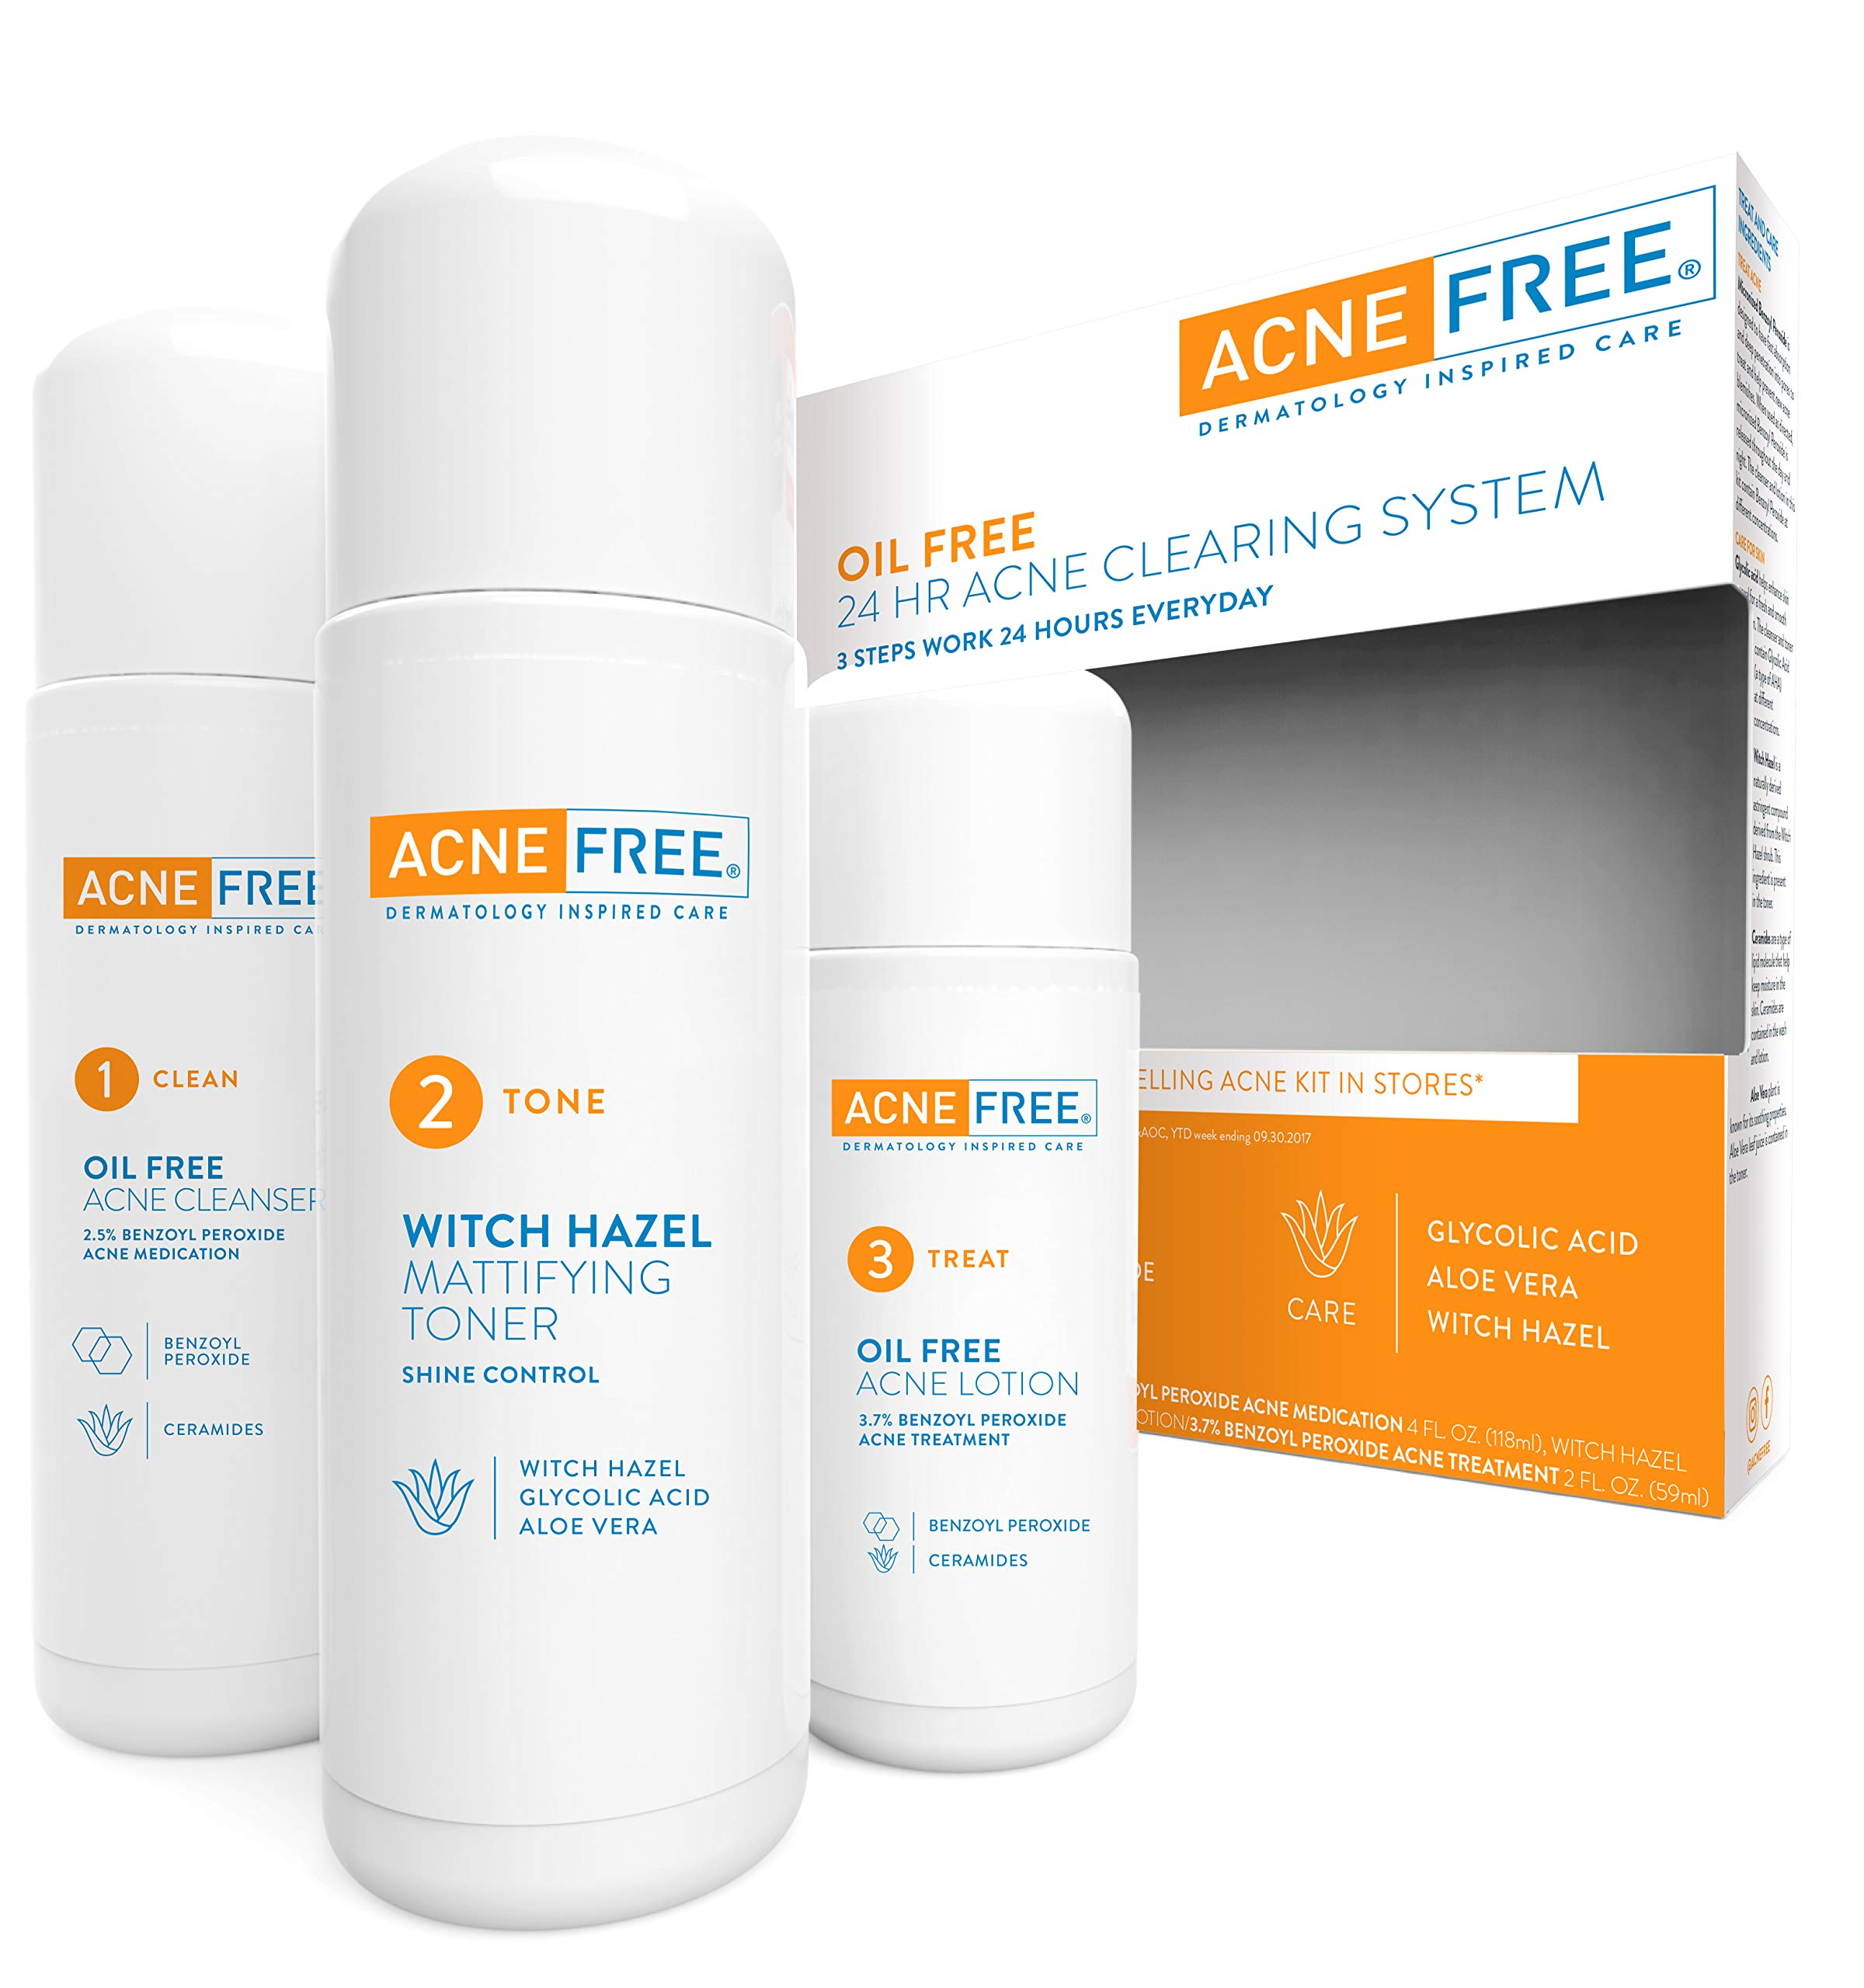 The 3-Step Treatment Plan for Back Acne